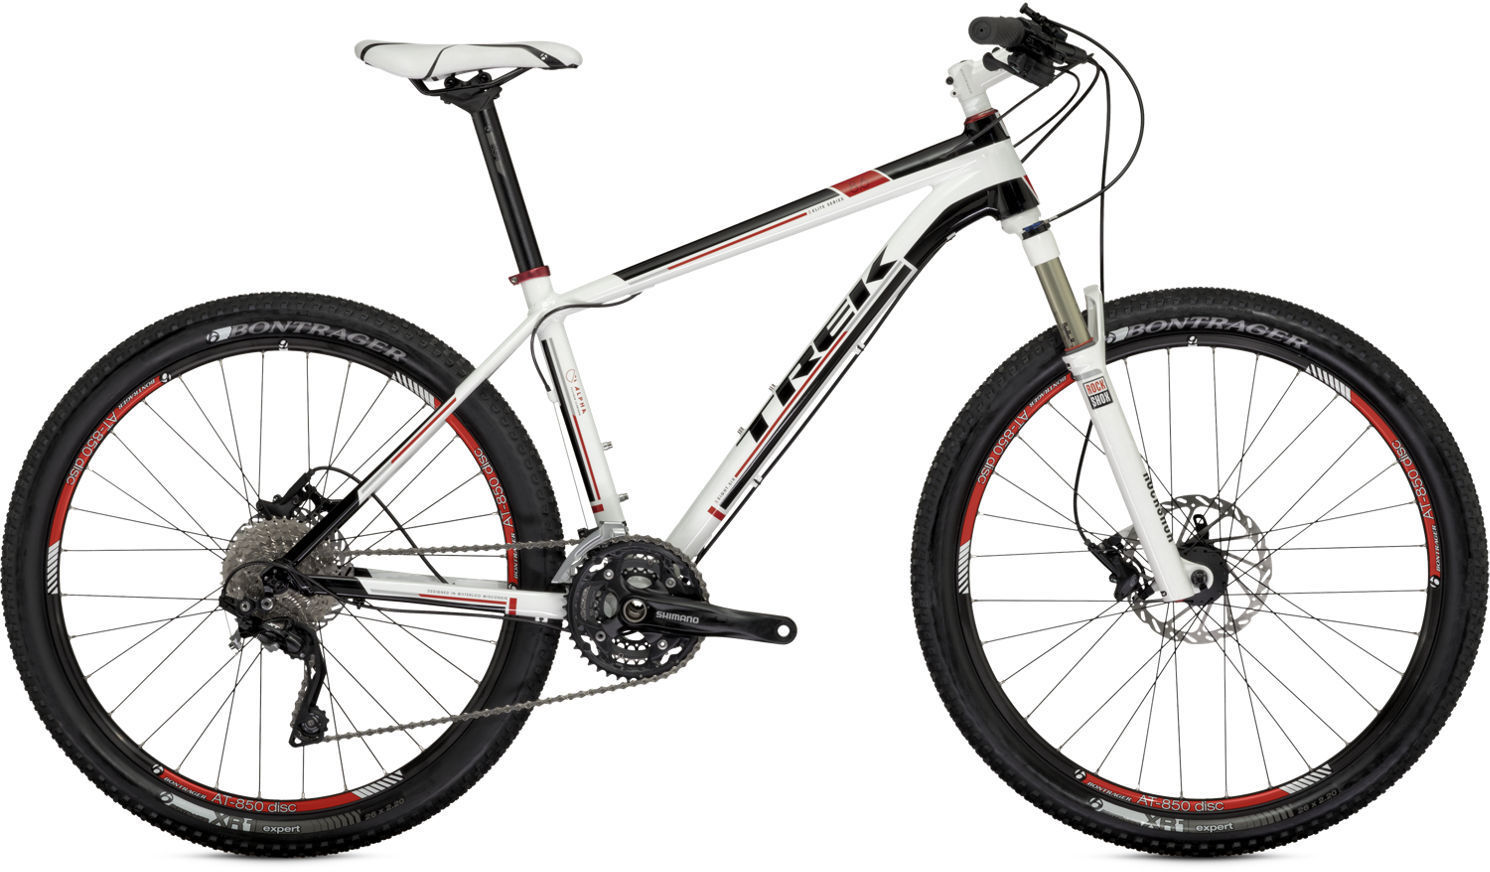 2012 Cannondale Scalpel 29er Carbon Weights Photos Specs Alloy Model  ing in addition 272259 Lentes together with Kcnc Rear 12mm Indexing Thru Axles further Su in addition Elite 8 6 2013. on what are hubs